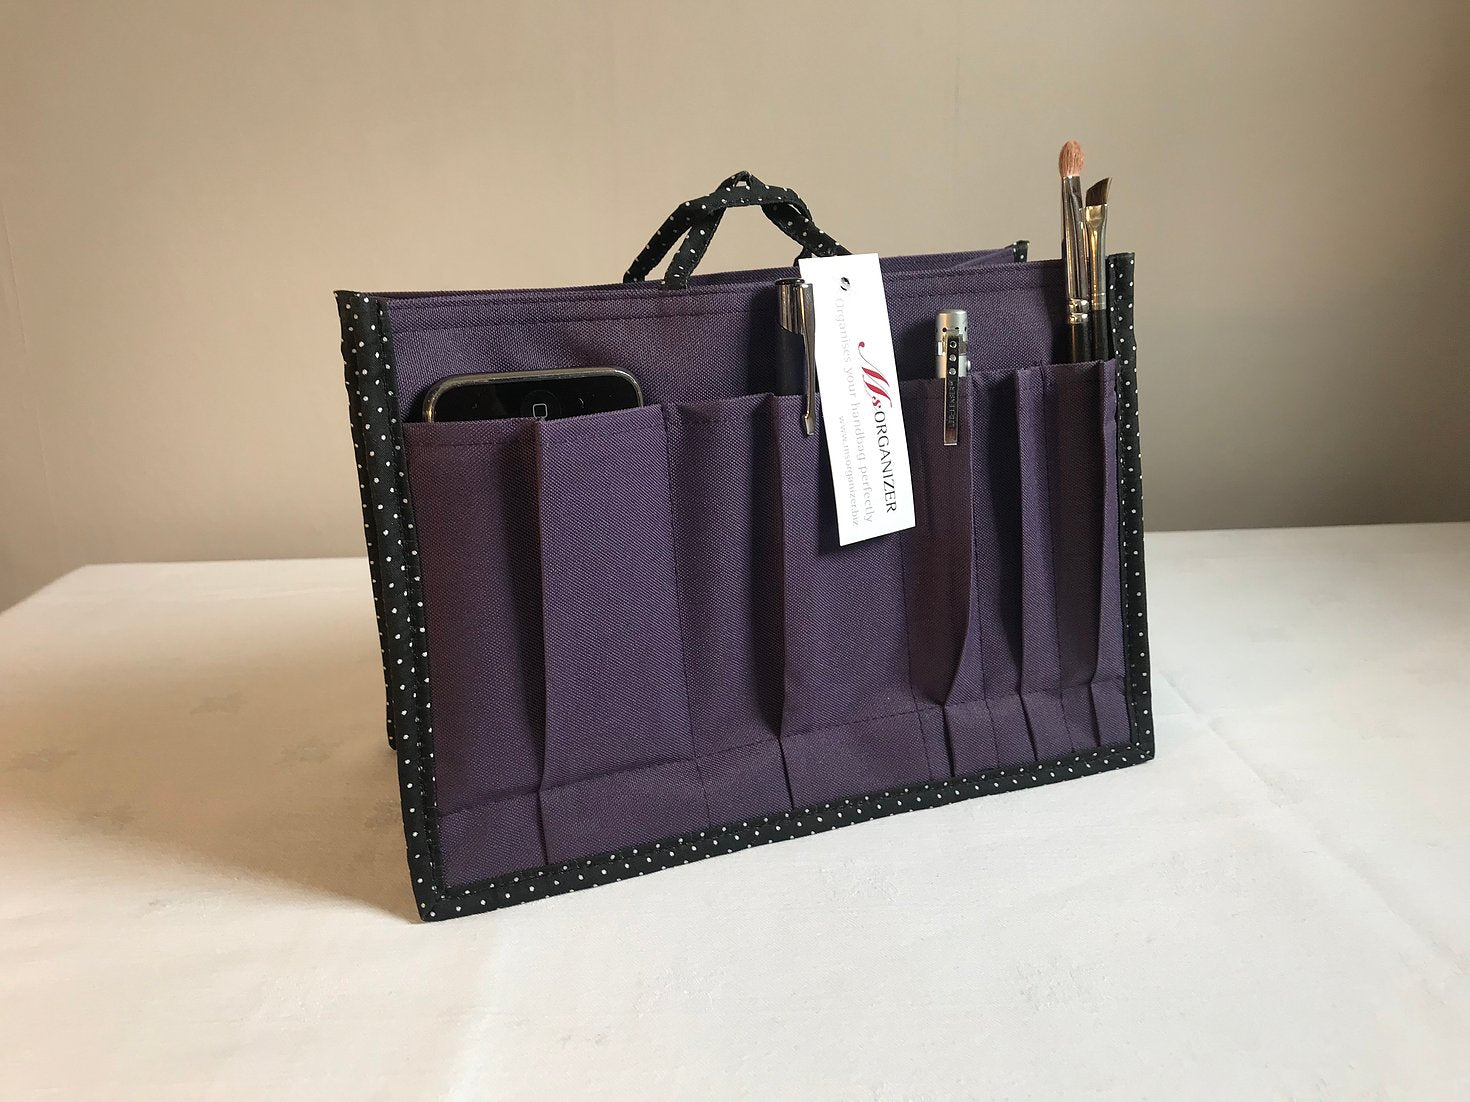 Ms Organizer, Handbag organiser, purple